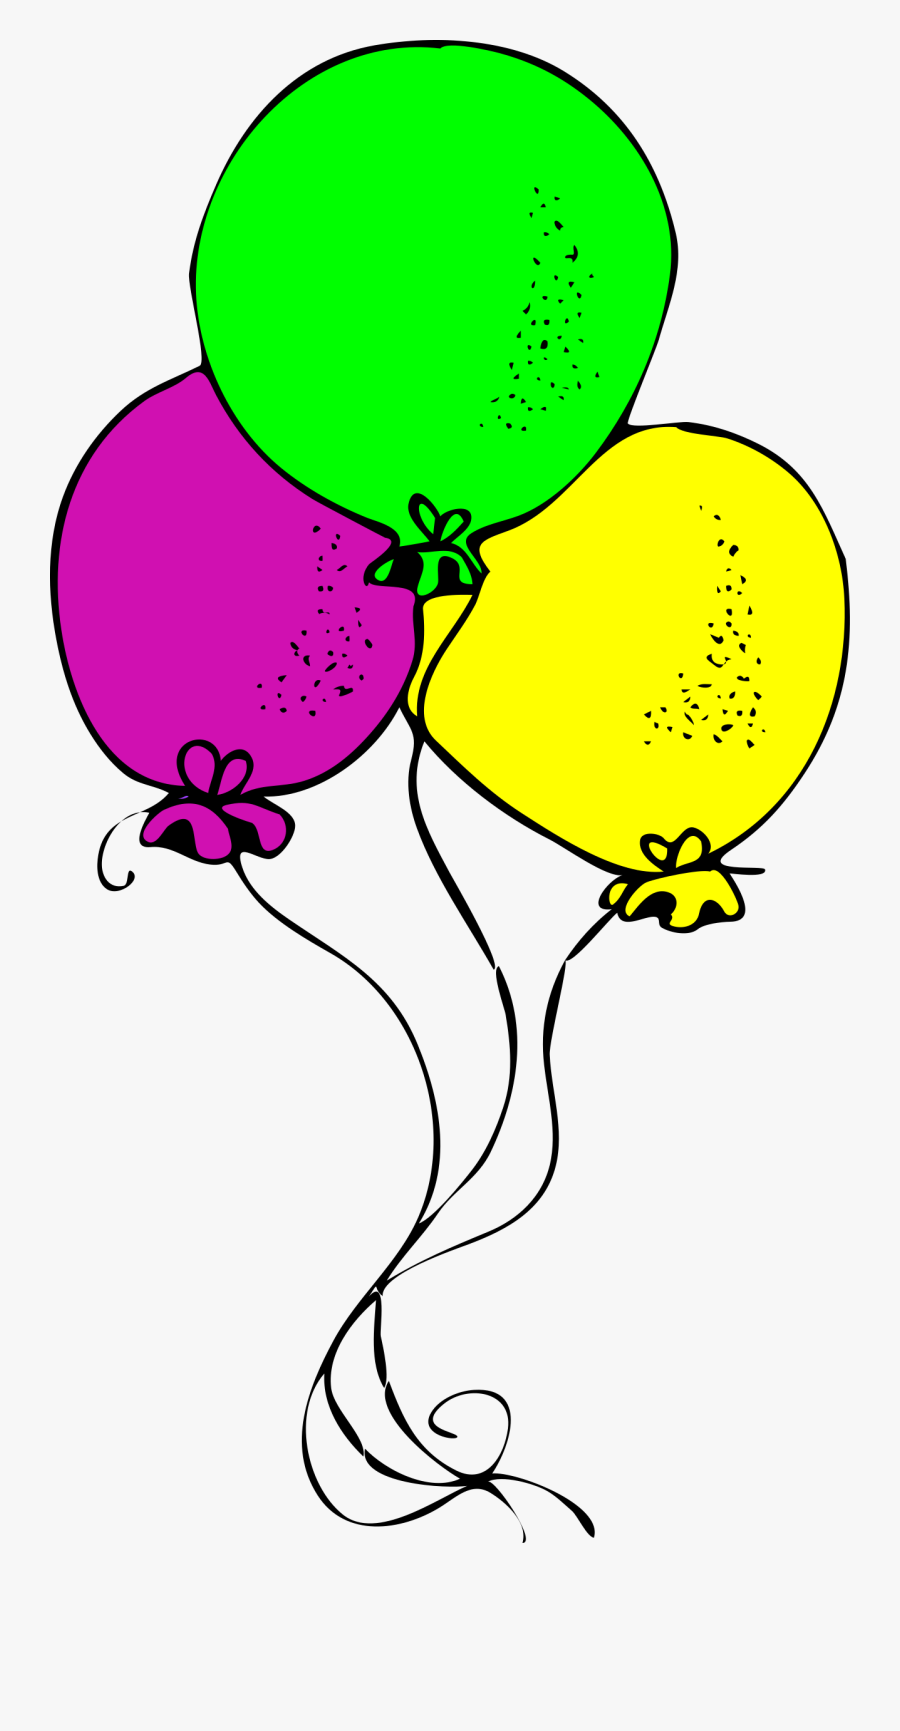 Cute Balloon Clipart Black And White, Transparent Clipart